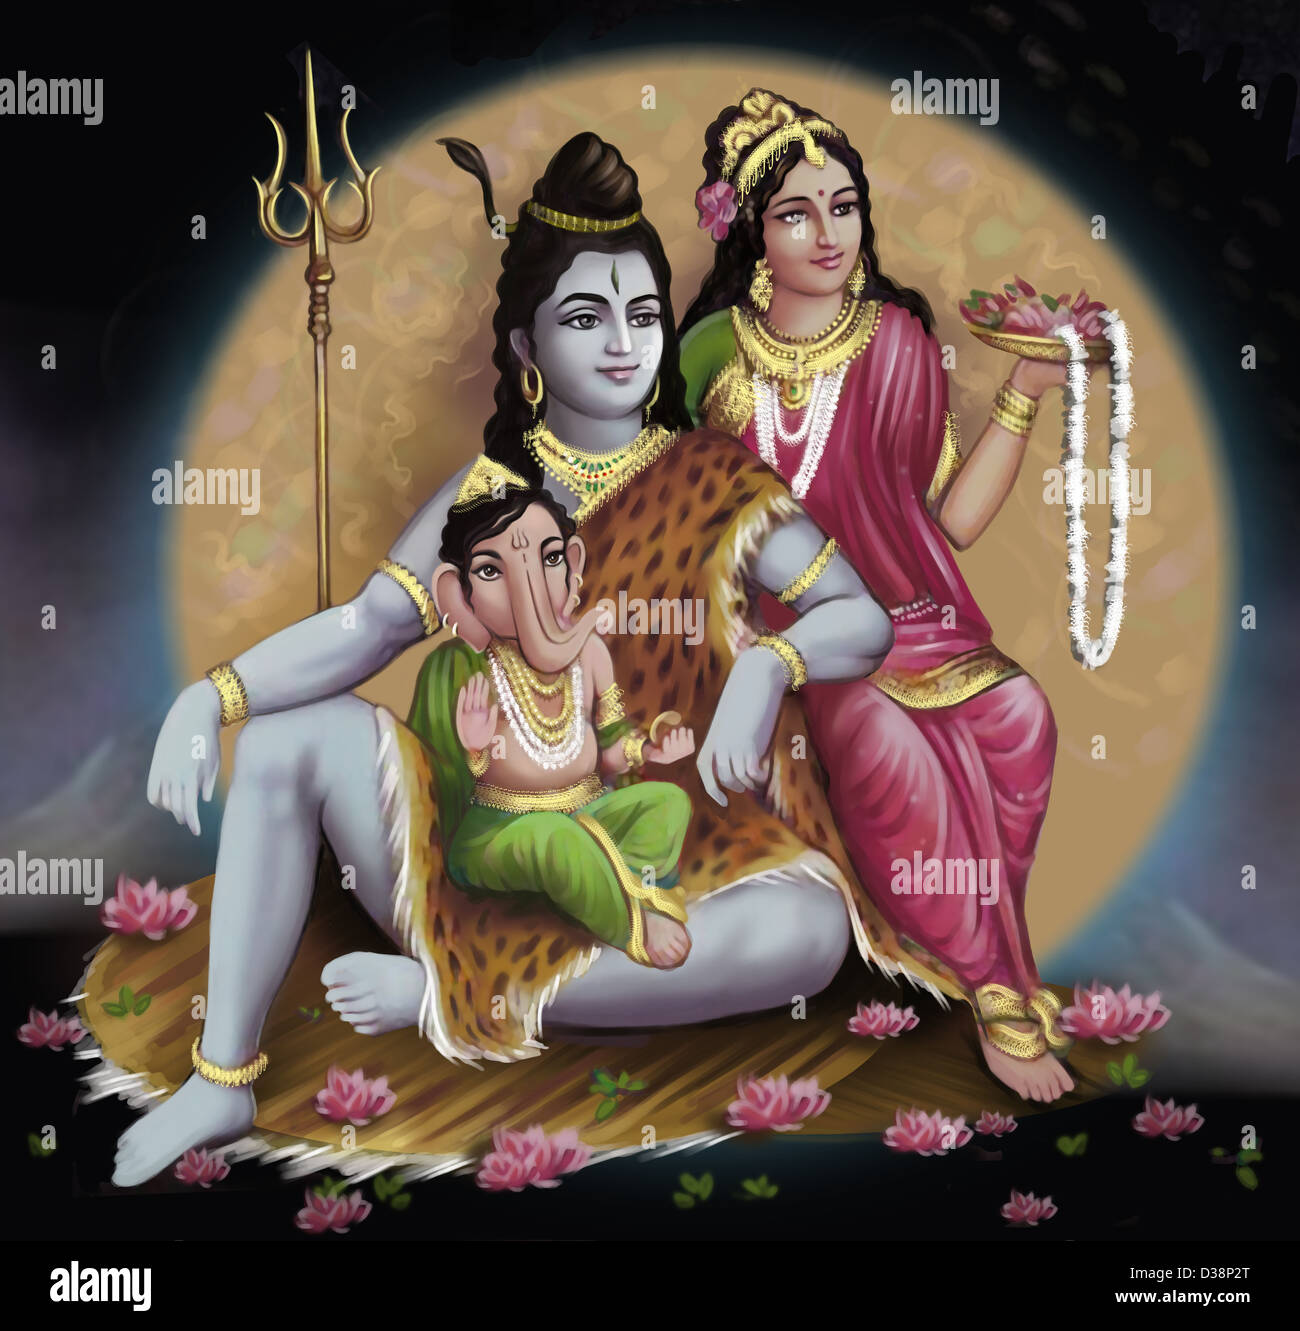 Lord Shiva Photos Lord Shiva Images Alamy